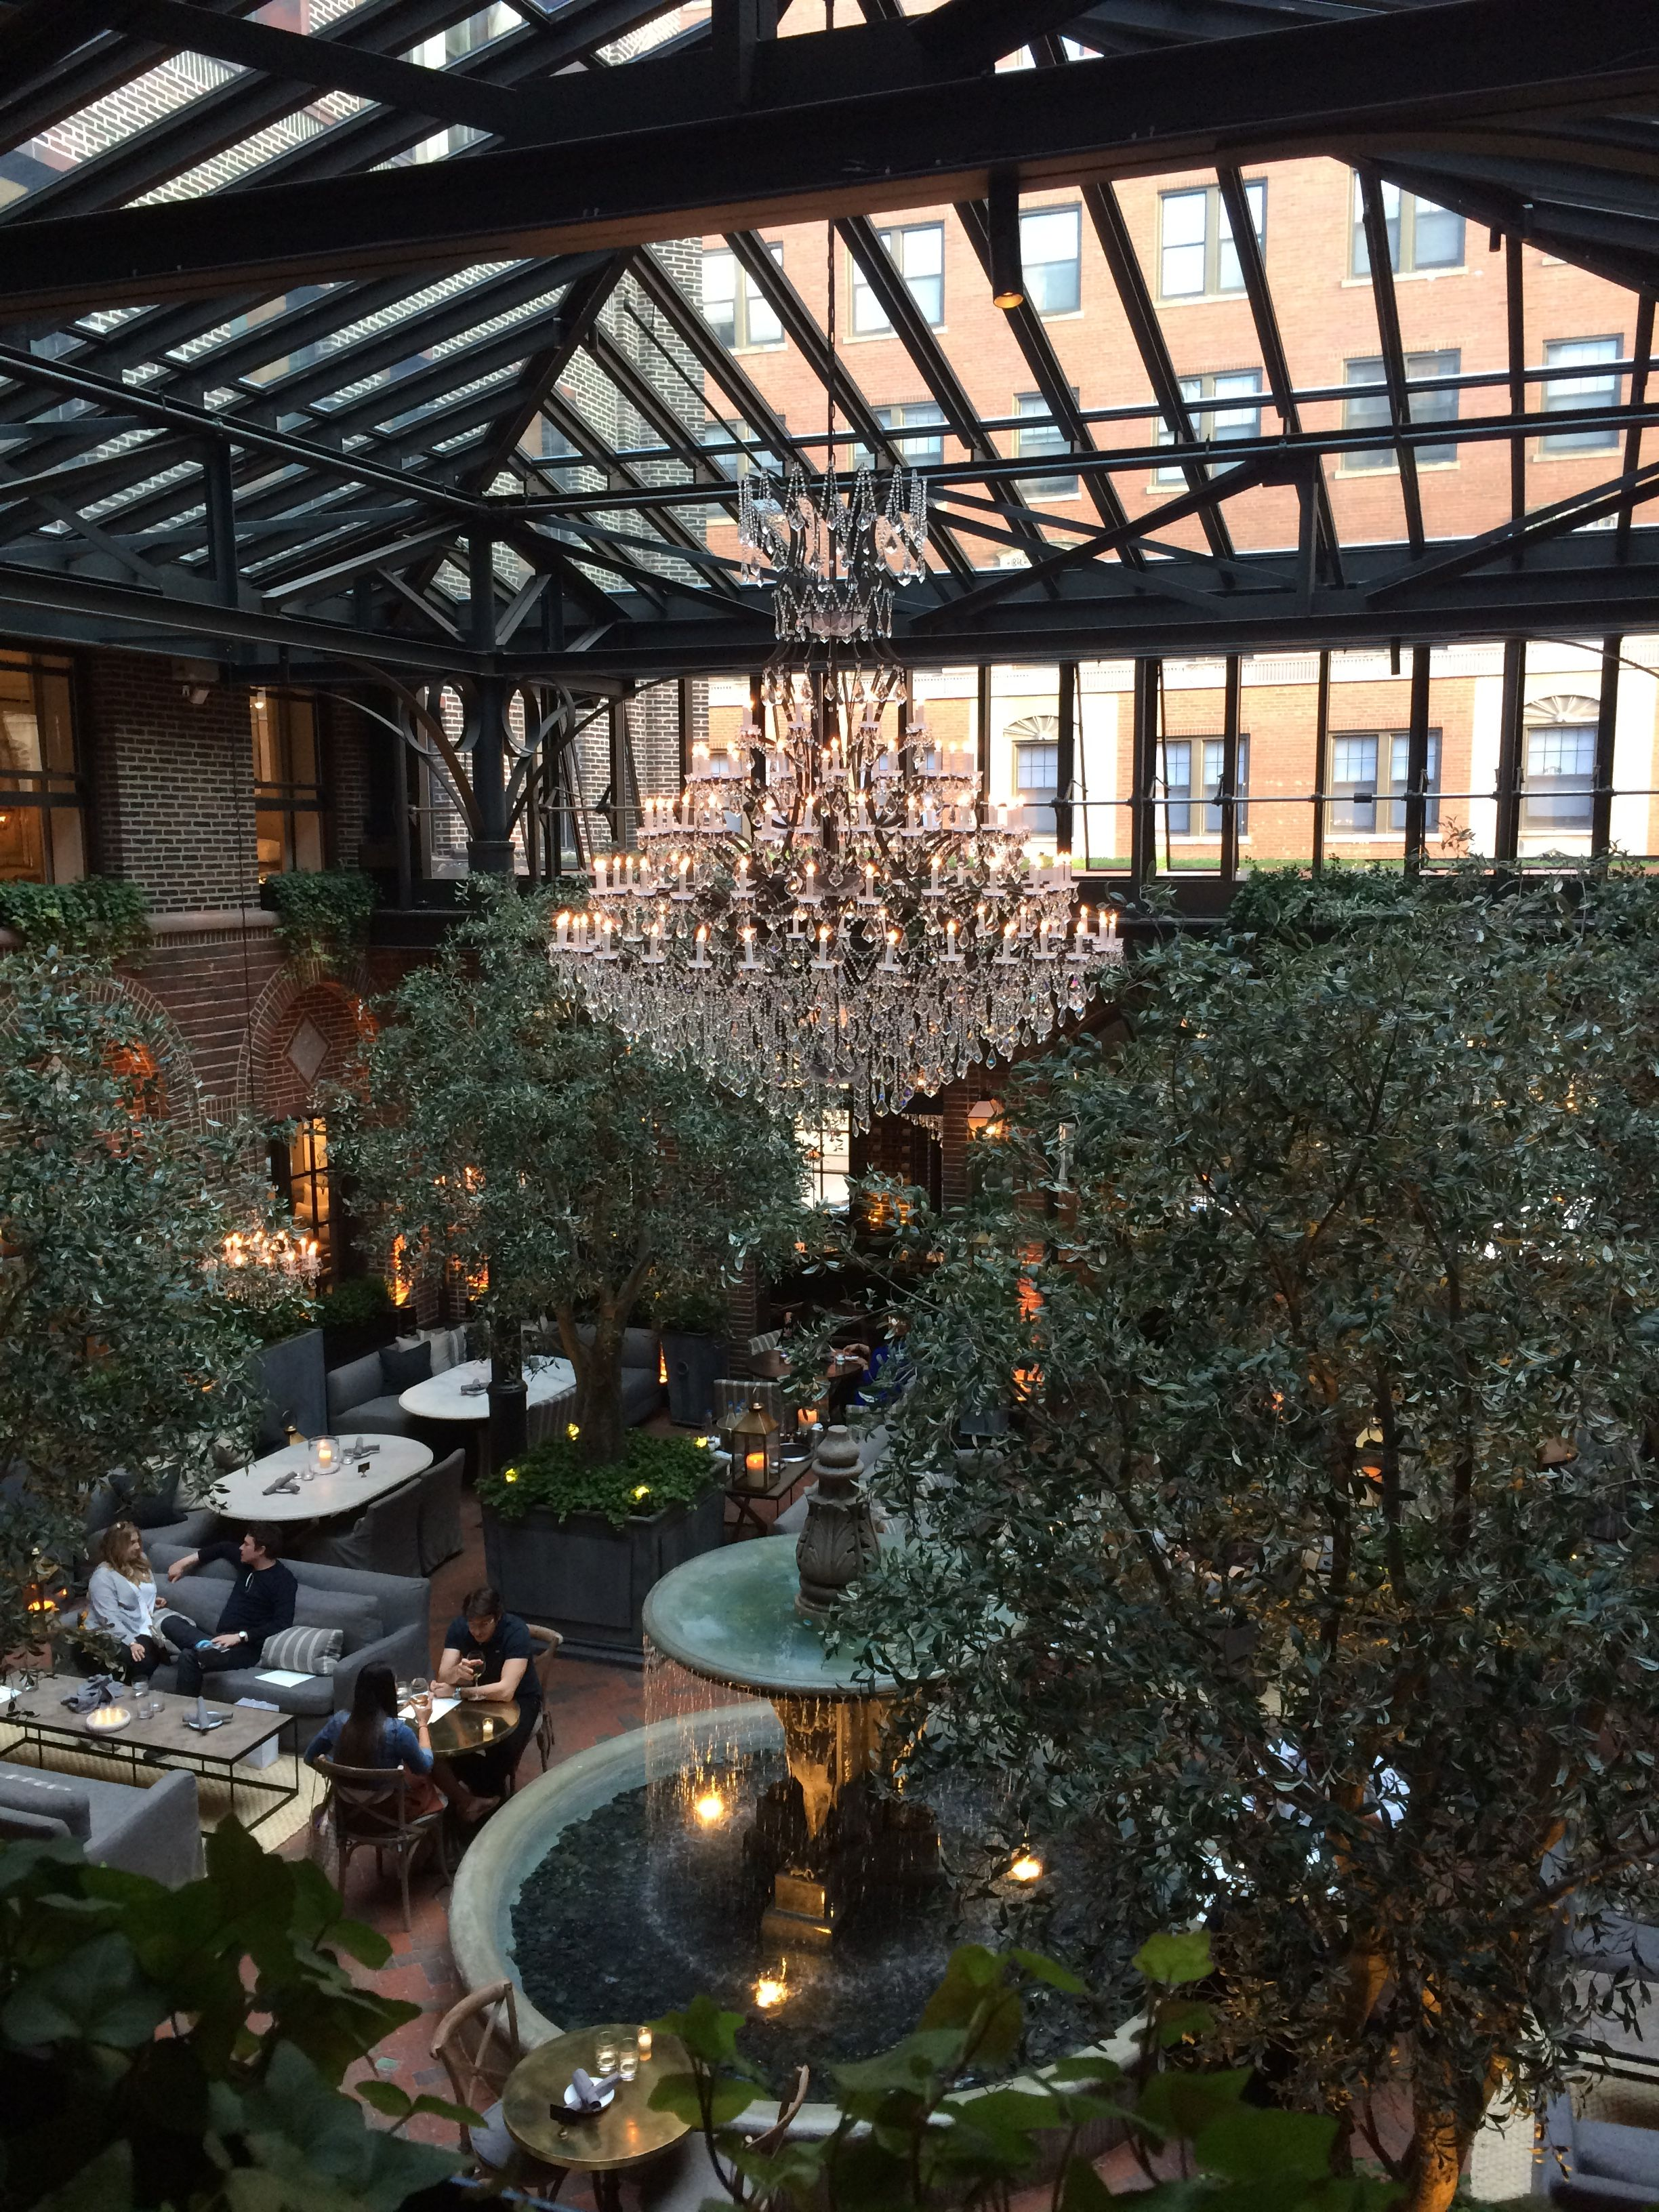 Restoration Hardware Chicago 3 Arts Club Cafe 1300 N Dearborn St Il 60610